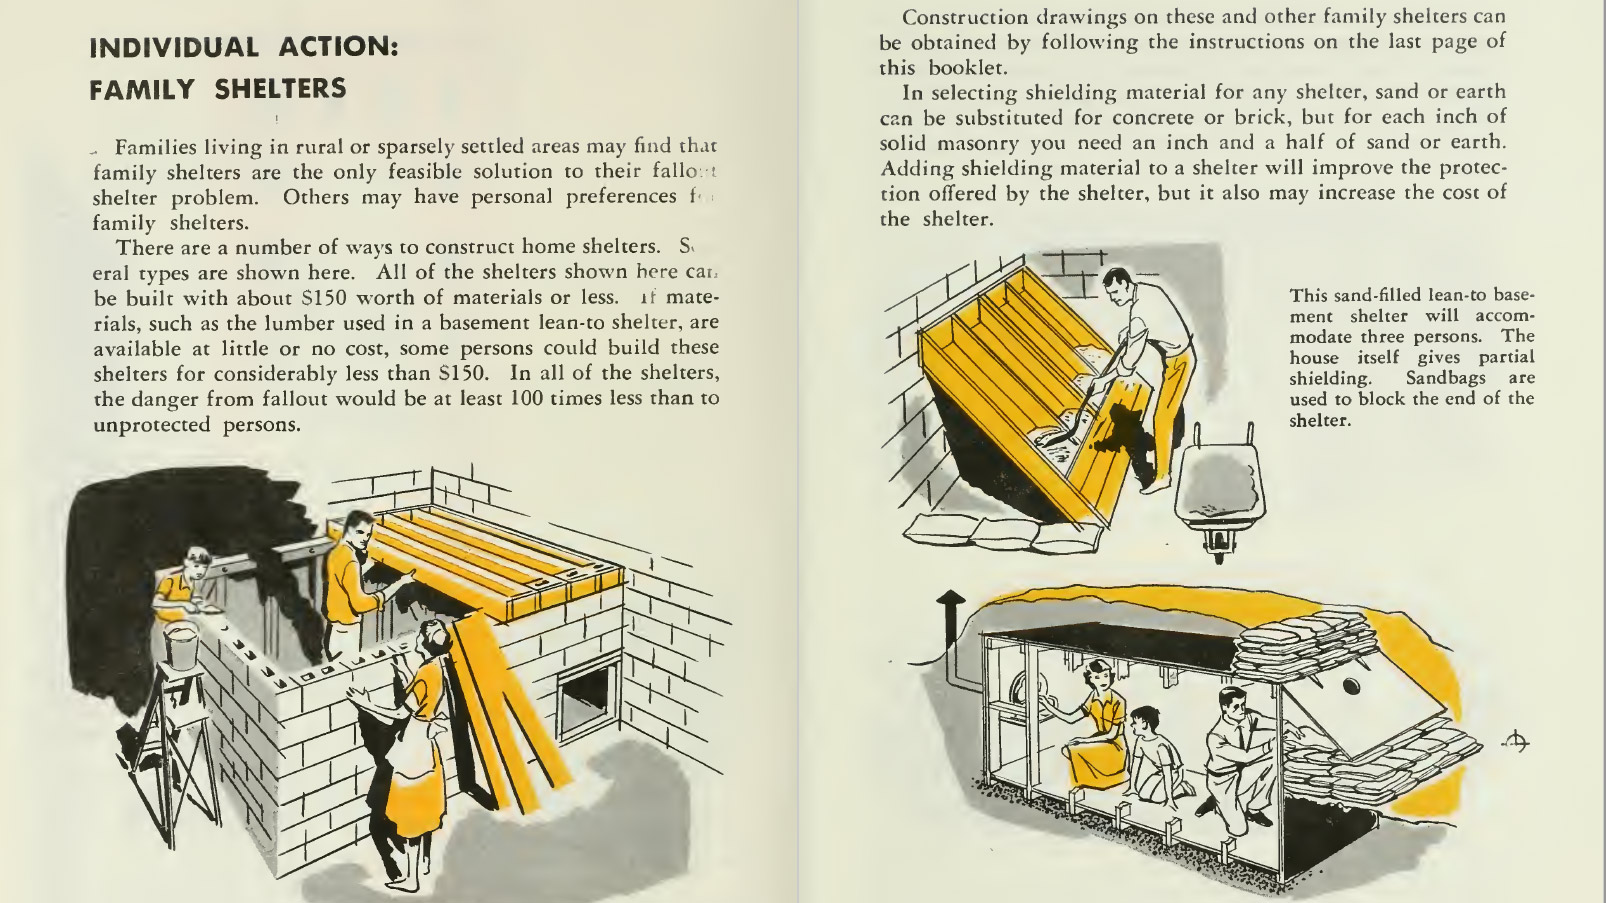 How do I build a fallout shelter in your   basement?  Guide to a safe room